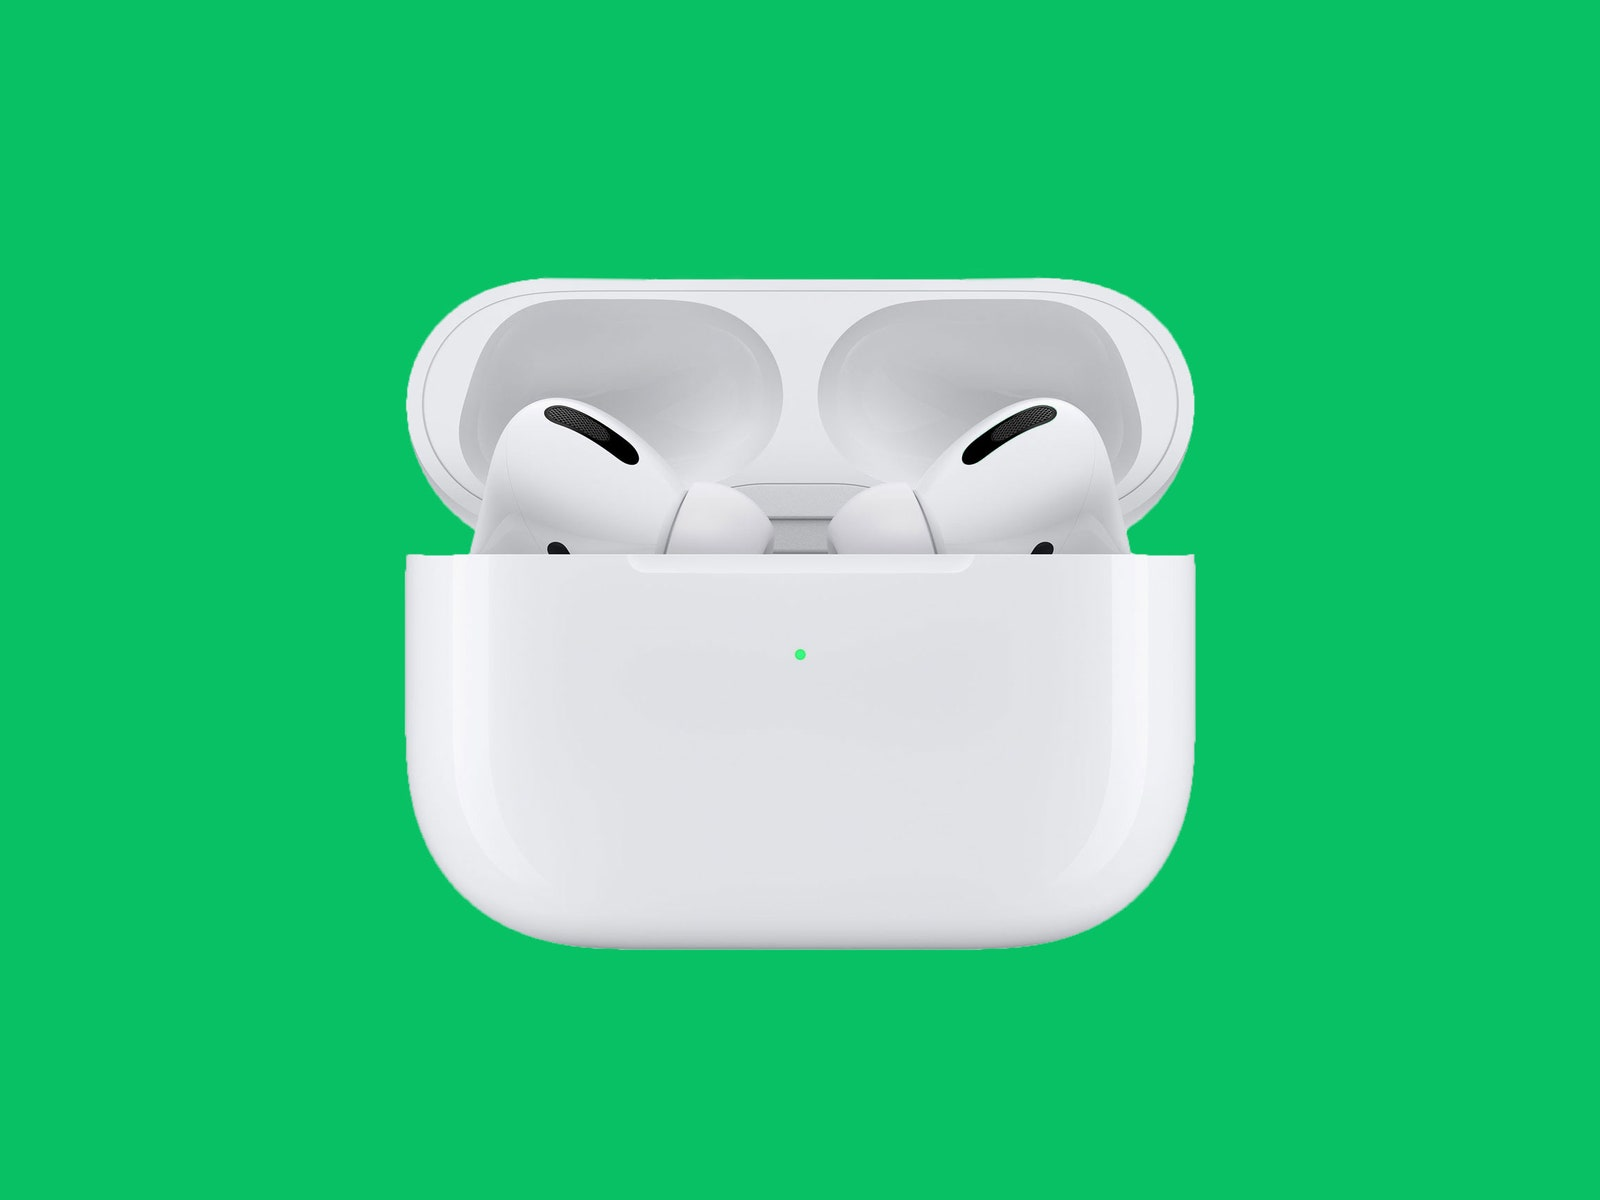 apple pods in case on green background